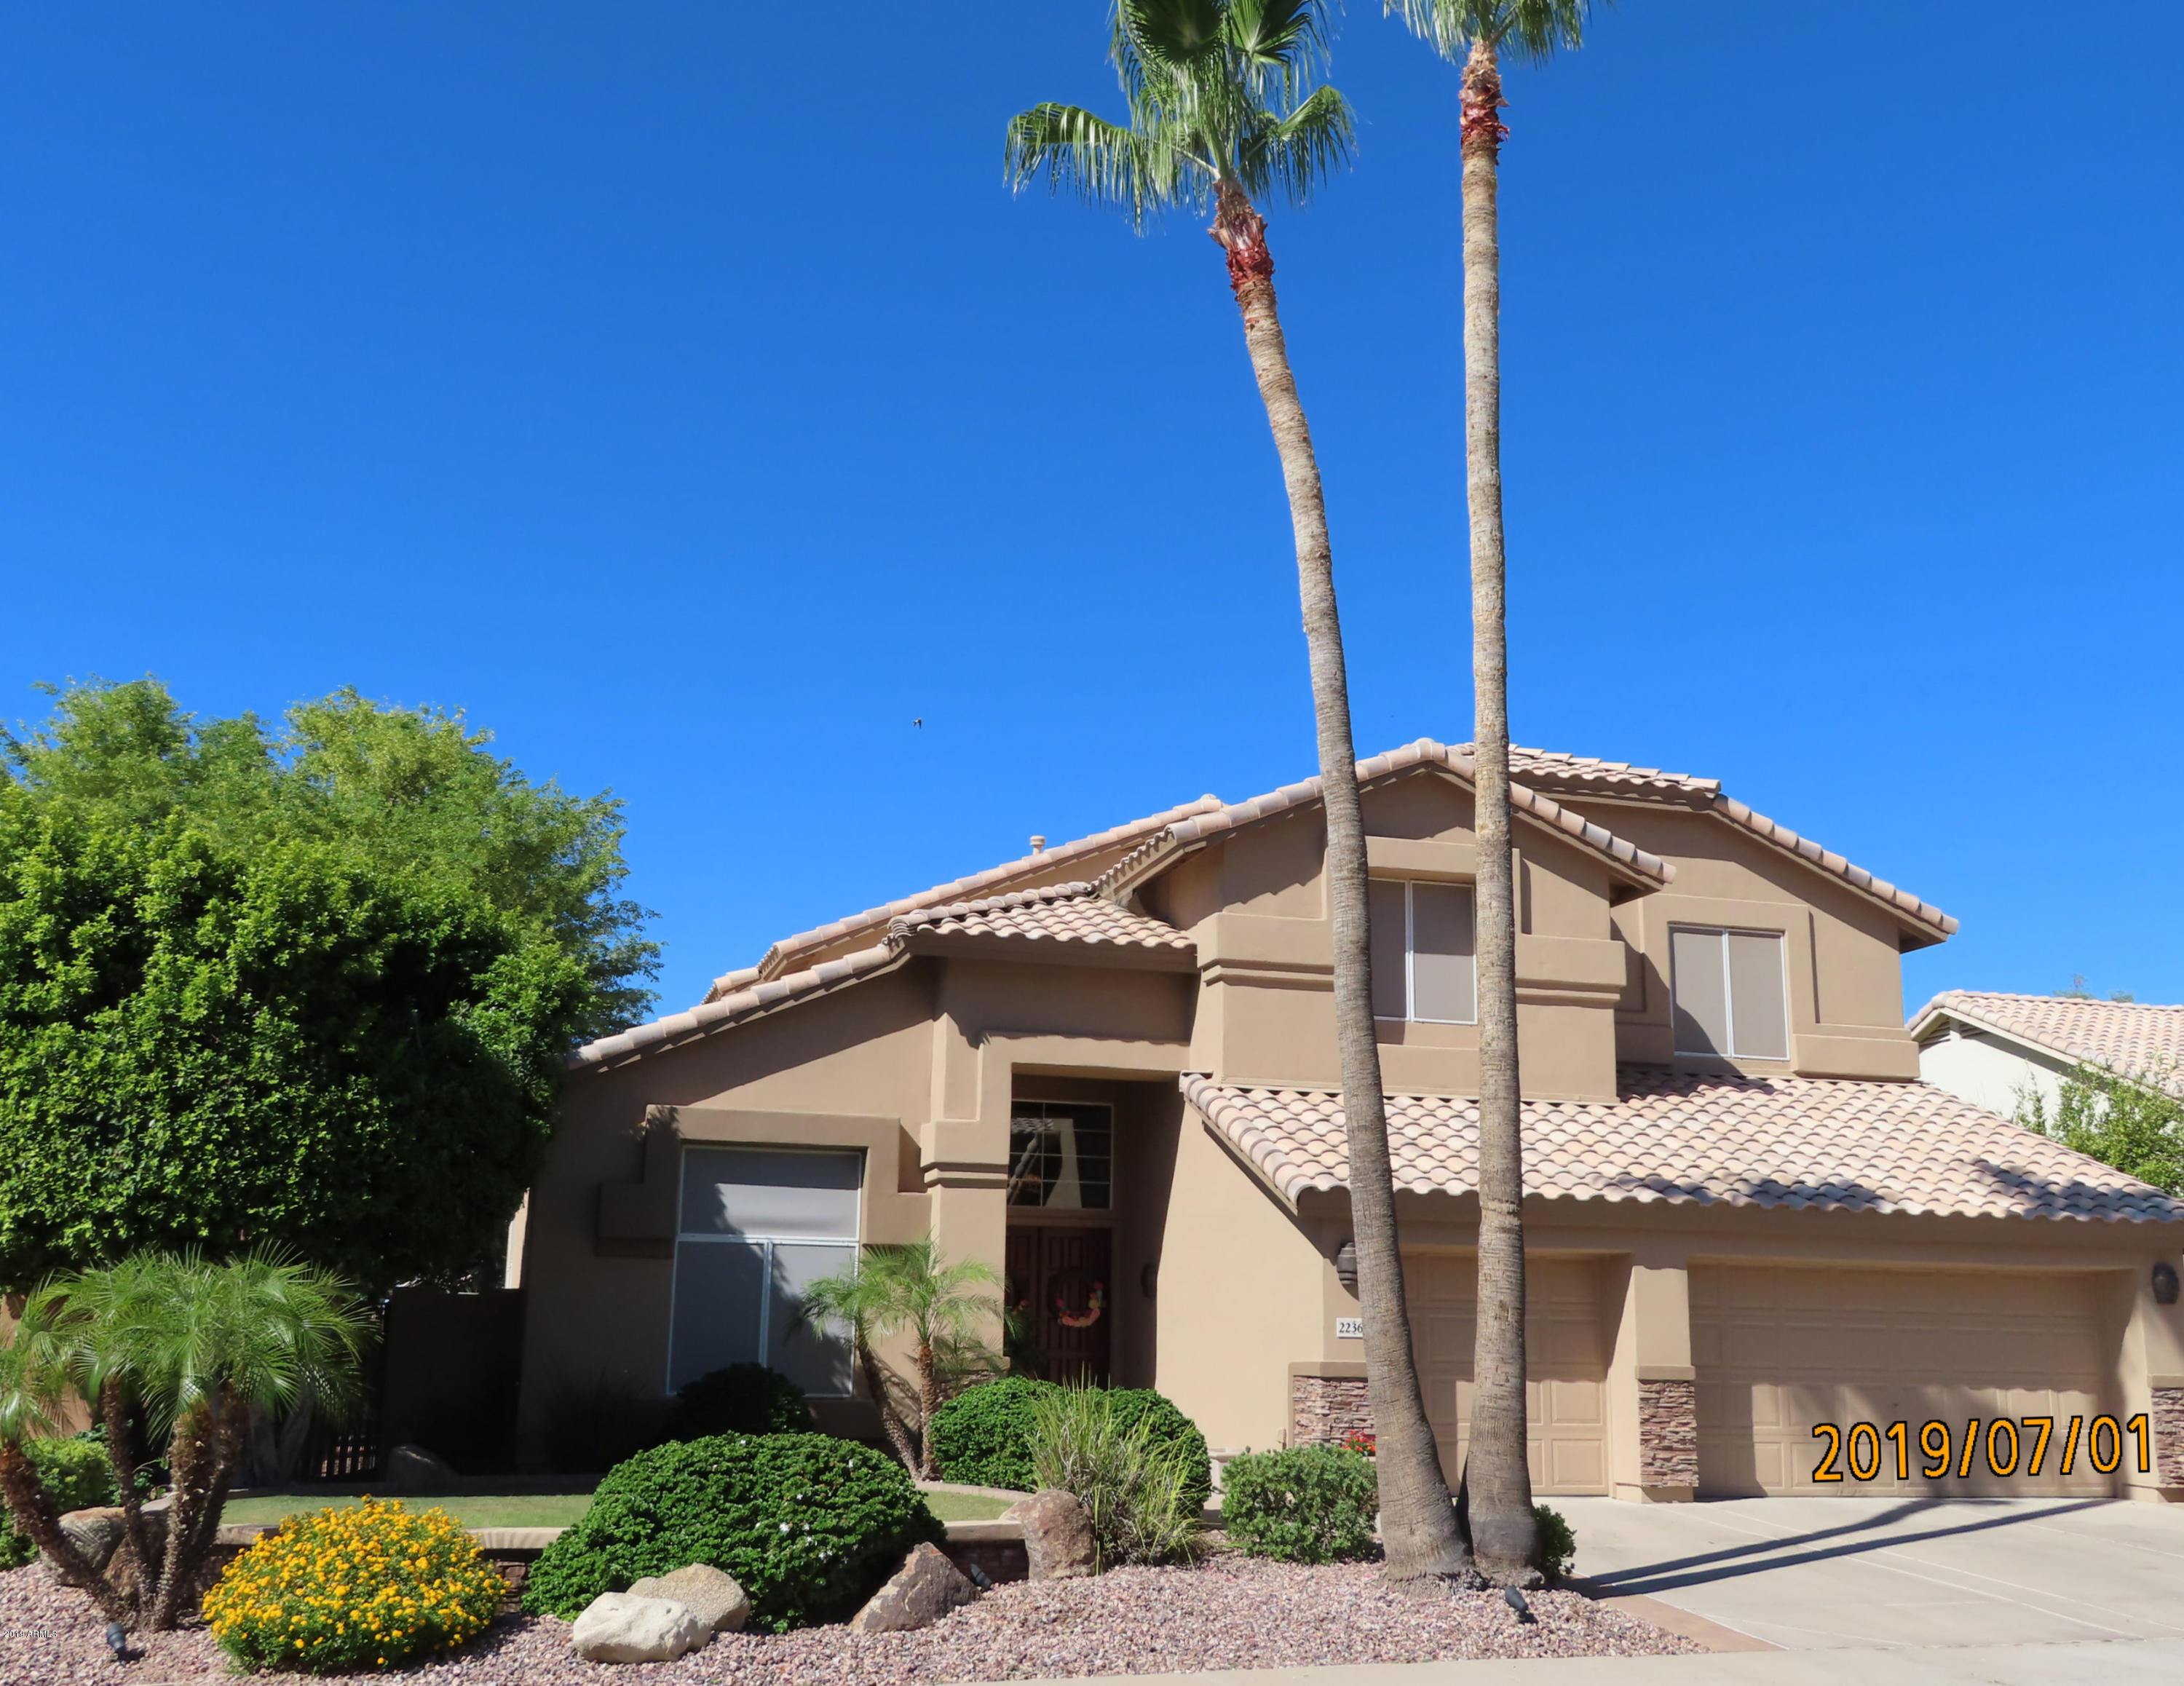 Photo of 22360 N 59TH Lane, Glendale, AZ 85310